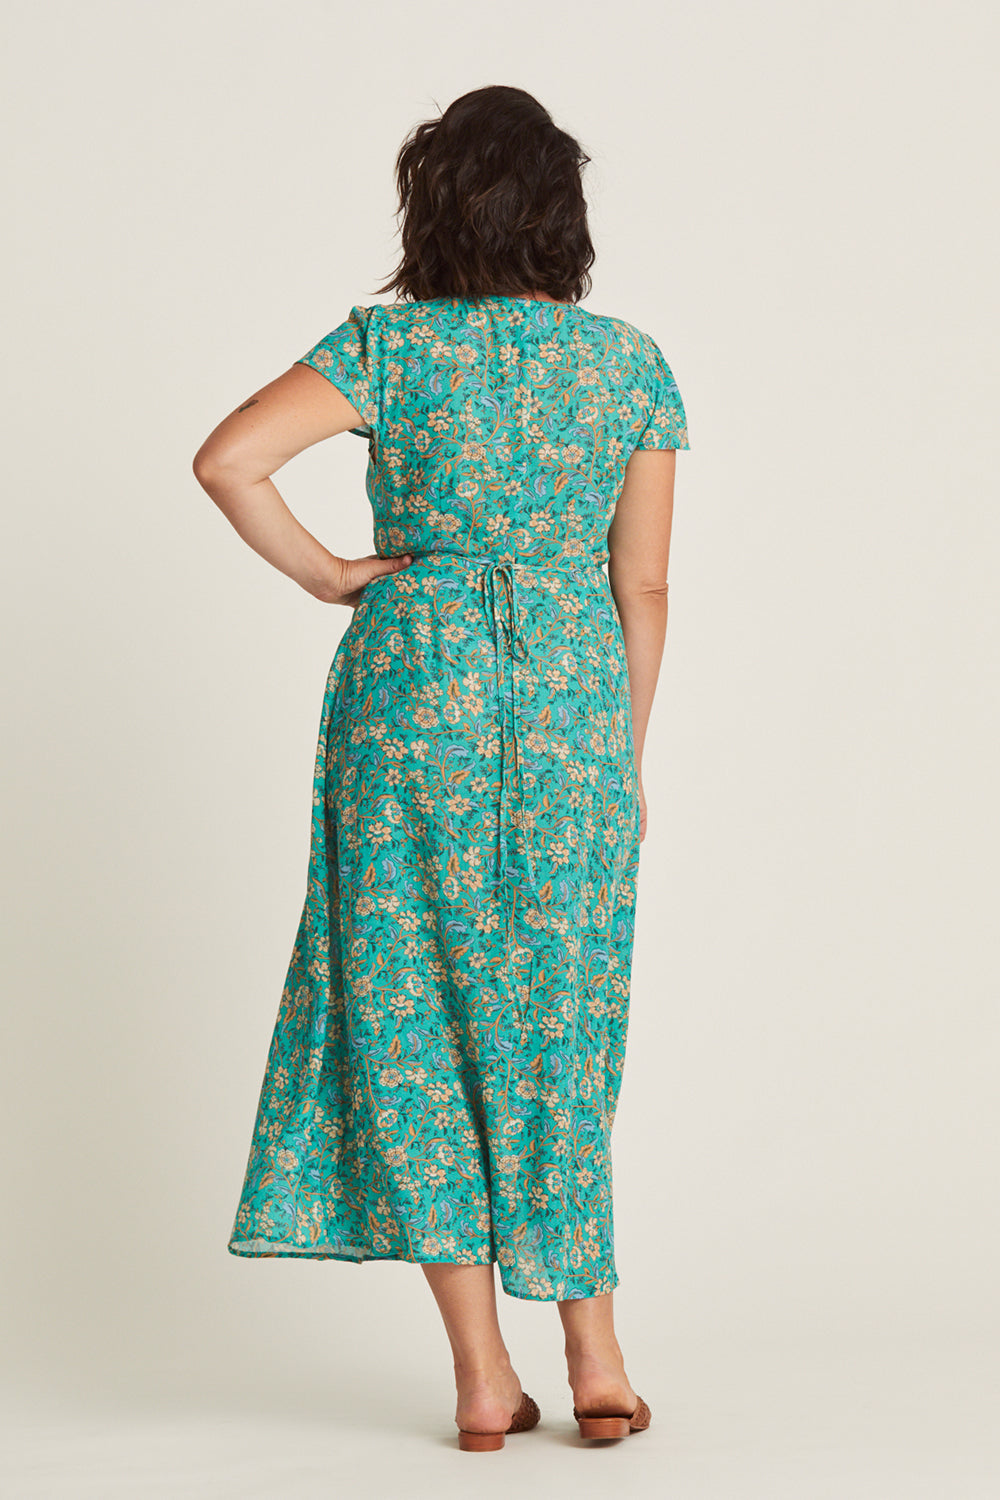 Daisy Chain Wrap Dress in Poolside